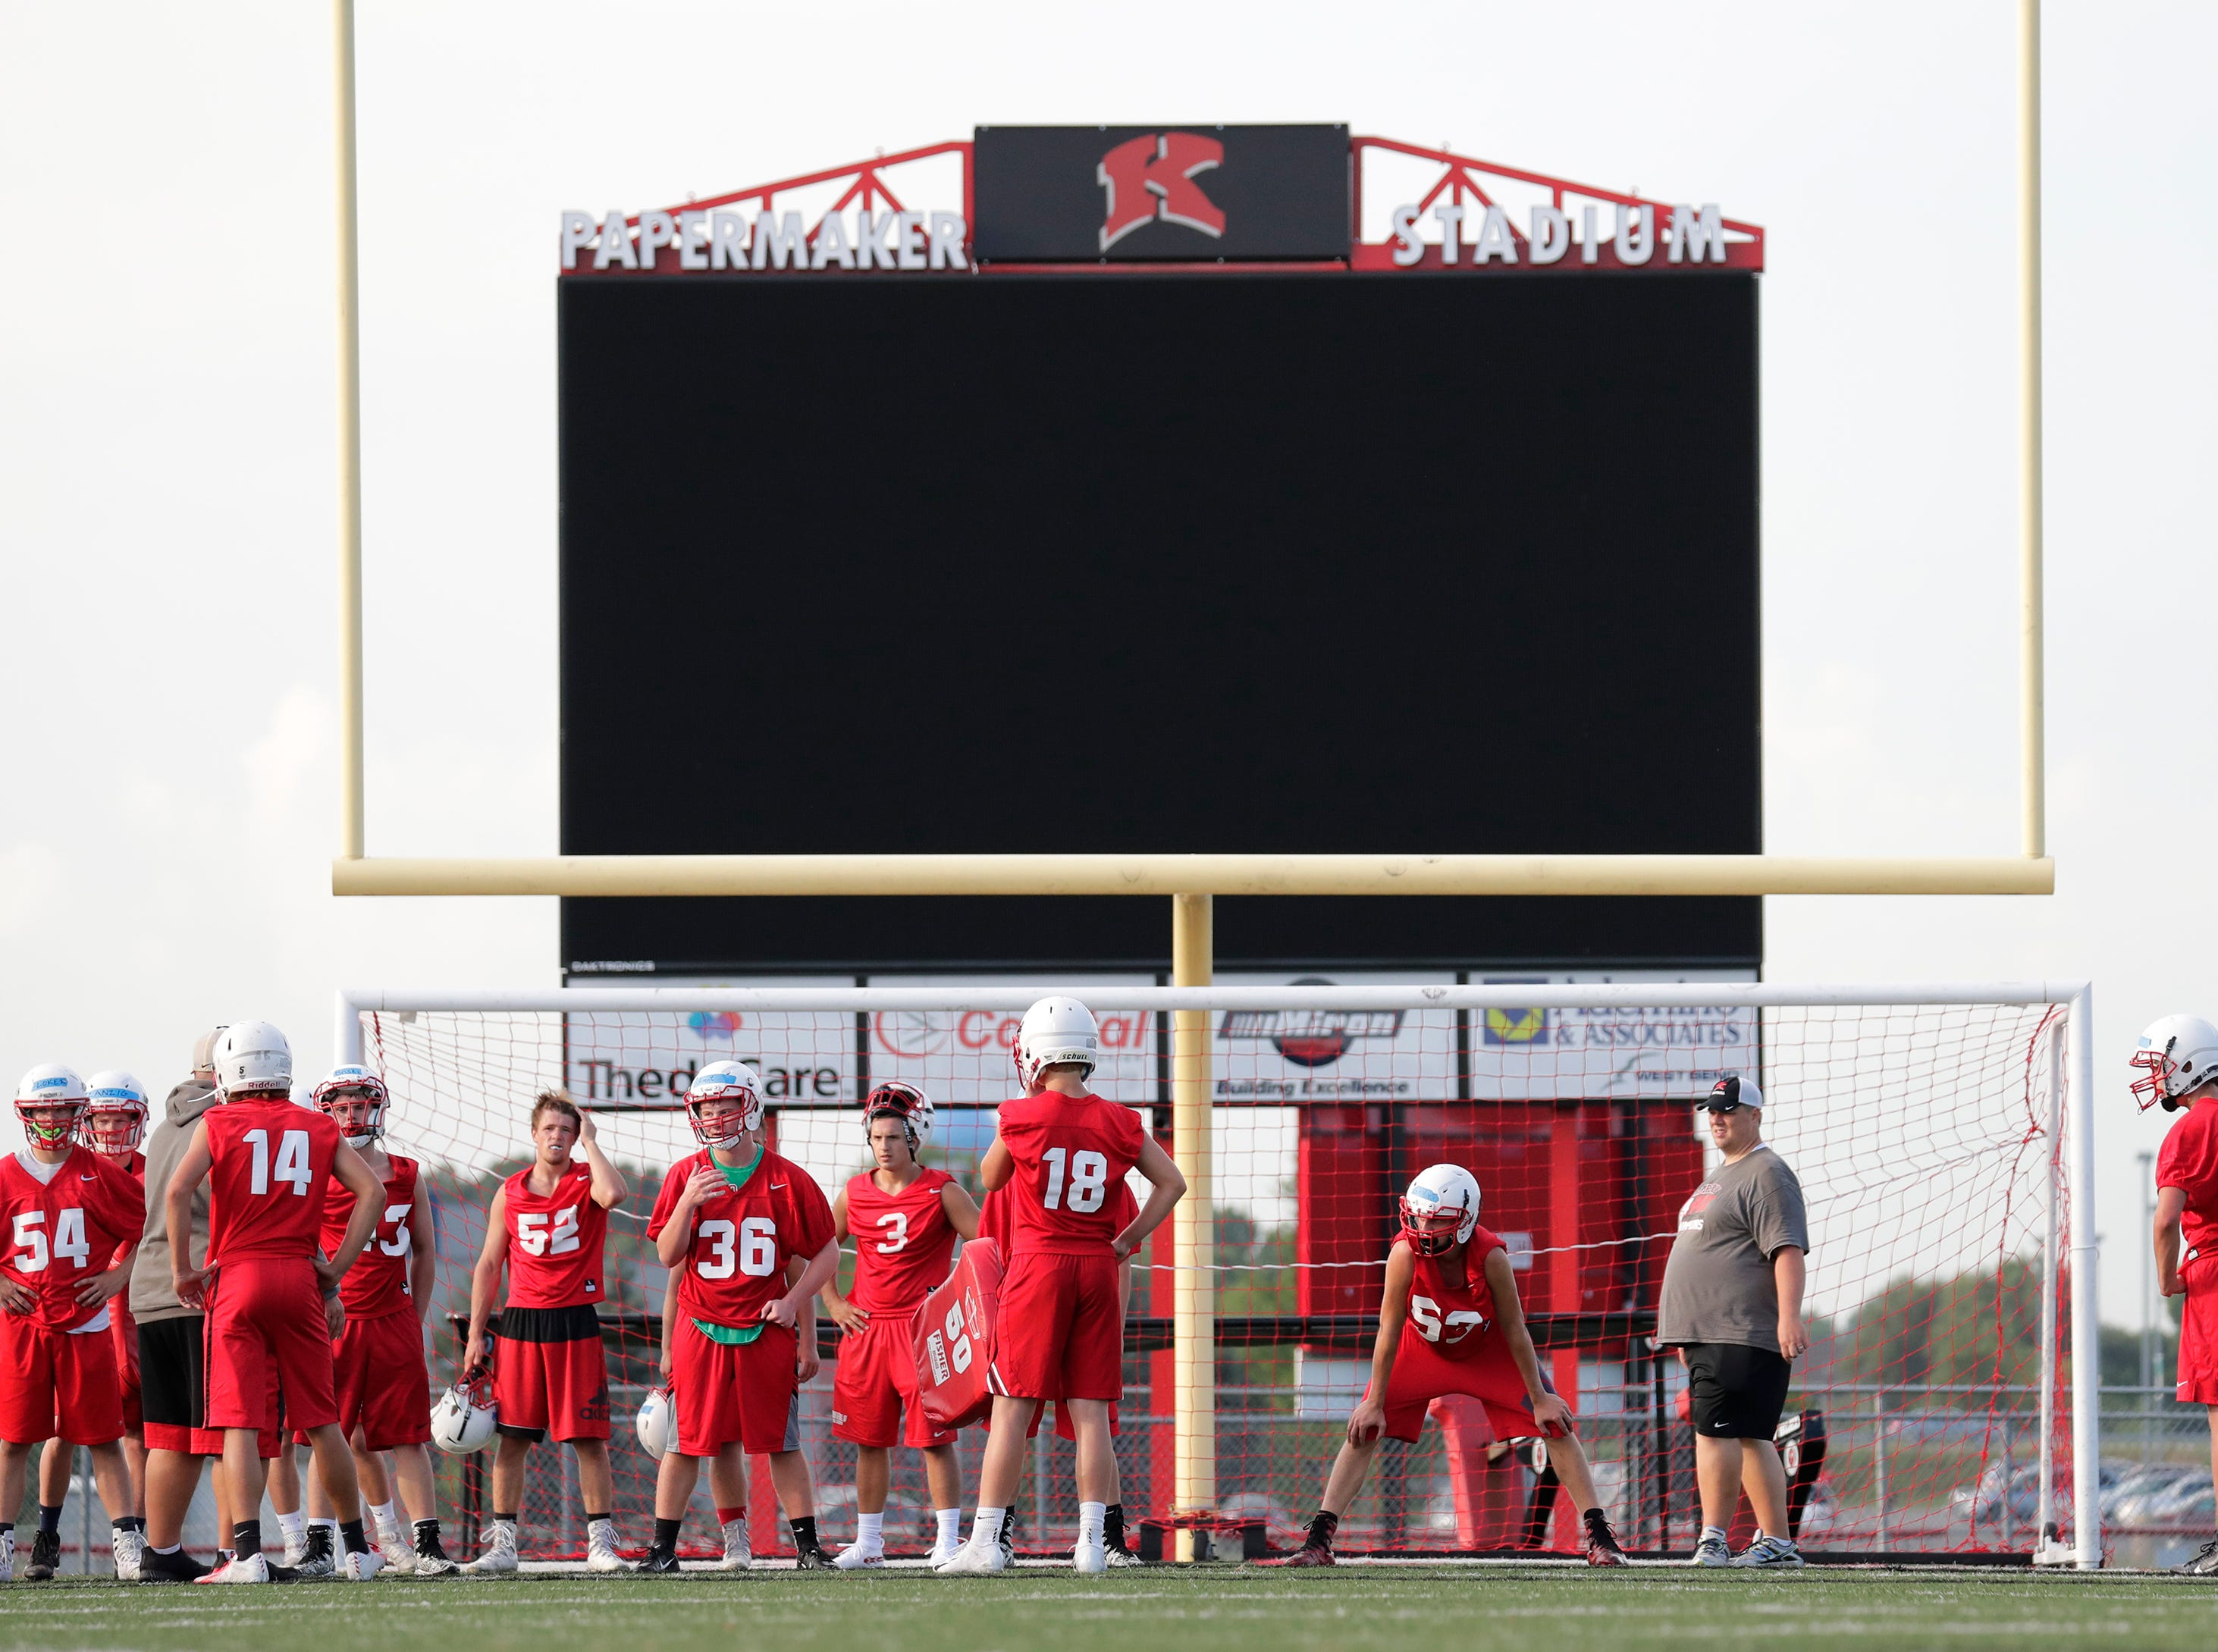 The Kimberly High School football practice Wednesday, August 1, 2018, at Papermaker Stadium in Kimberly, Wis. 